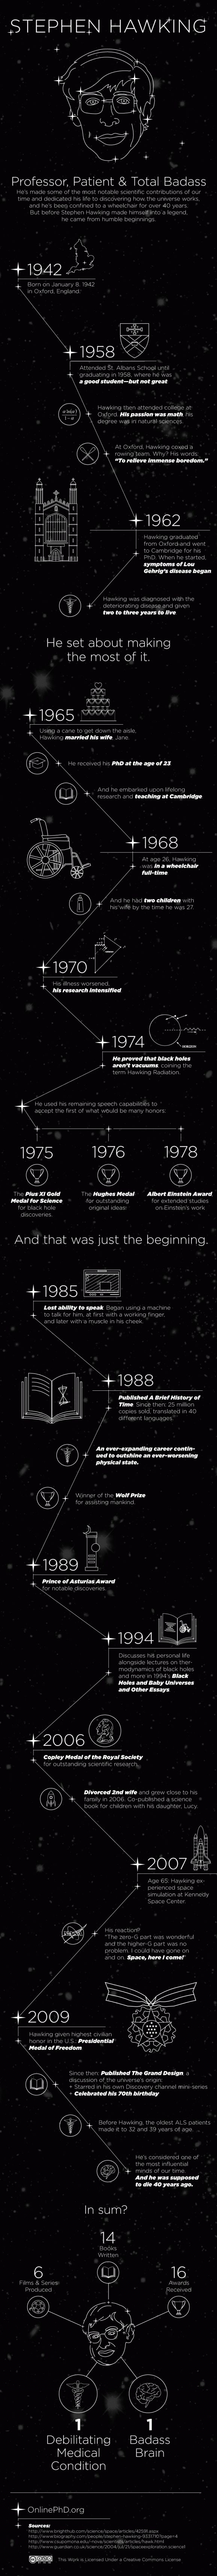 The career of Professor Stephen #Hawking (Infographic)